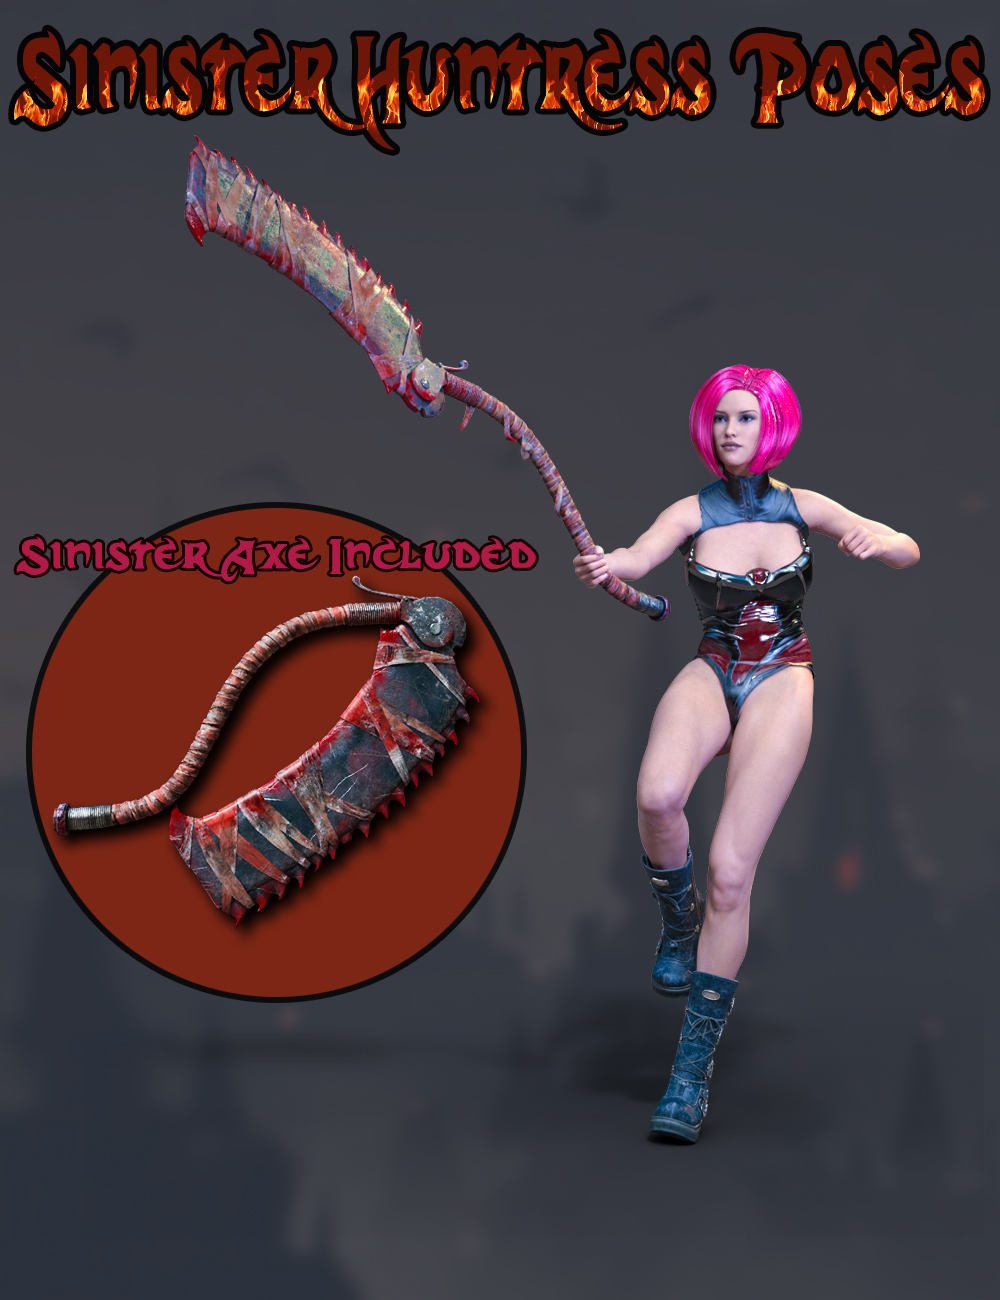 Slide3D Sinister Huntress Poses with Axe for Genesis 3 Females by Slide3D